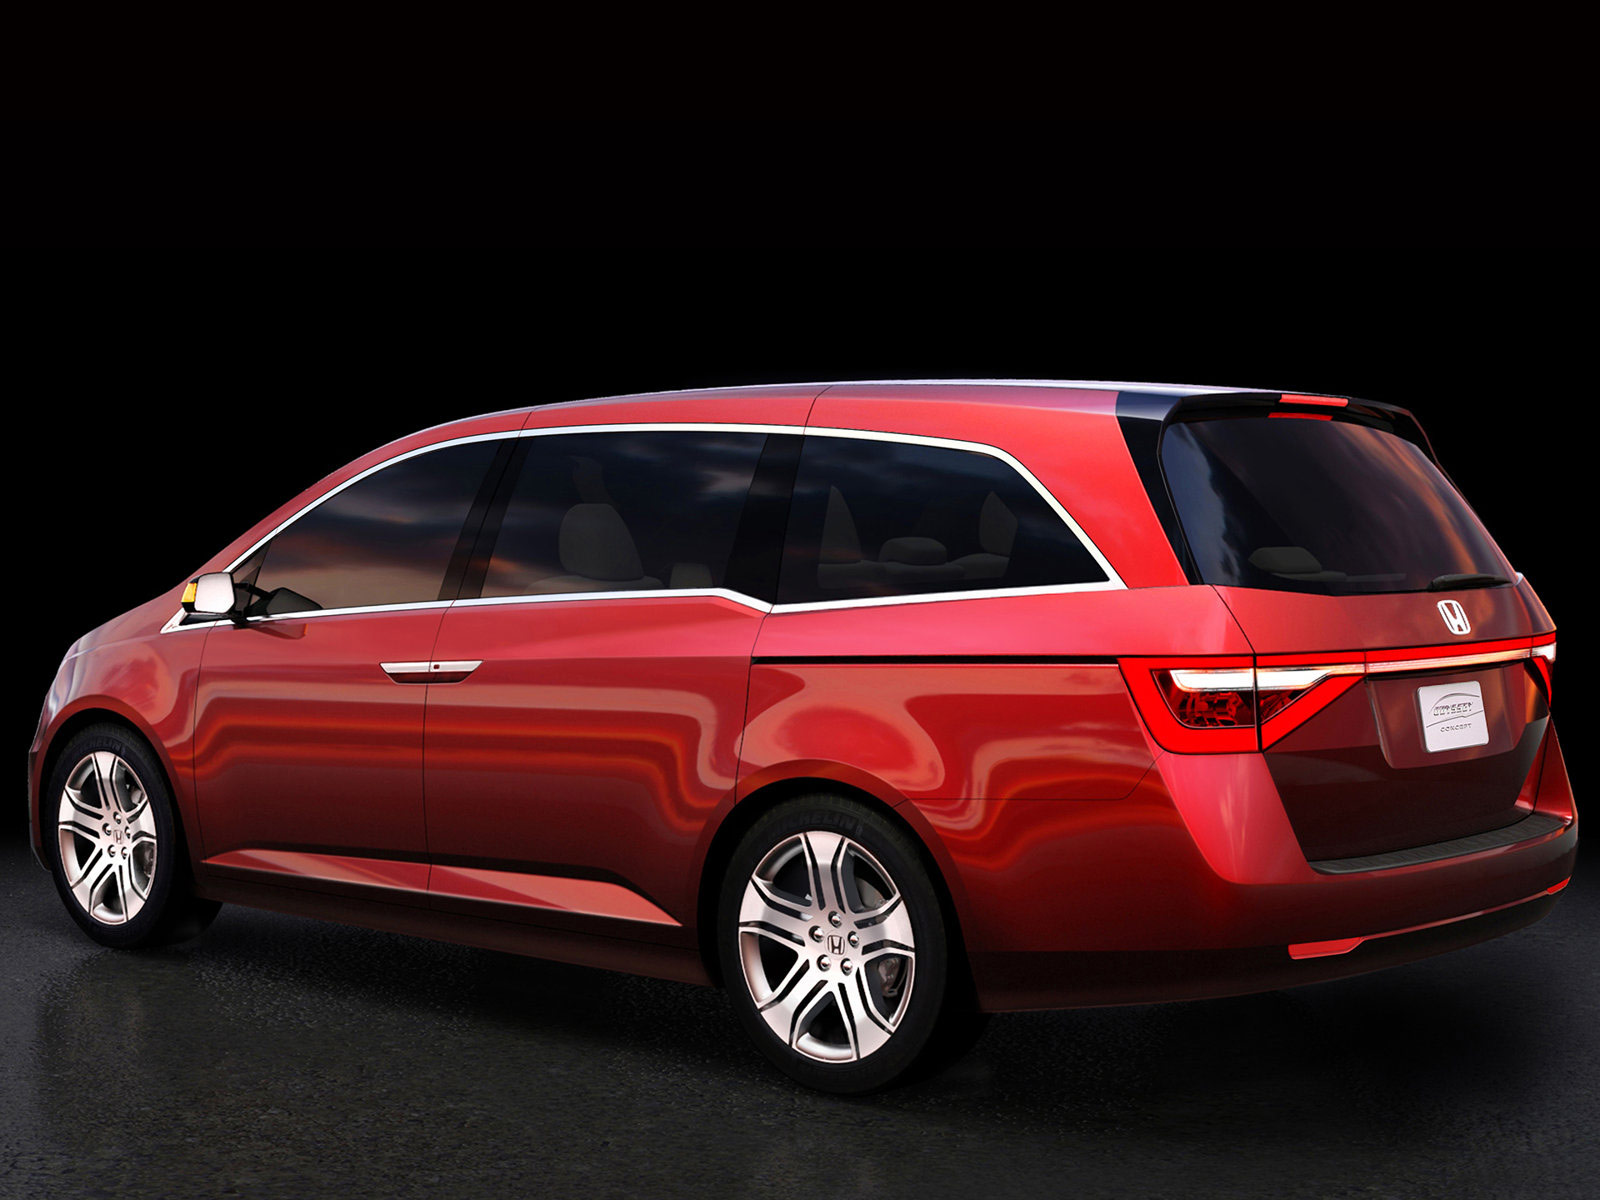 honda odyssey concept car  accident lawyers info